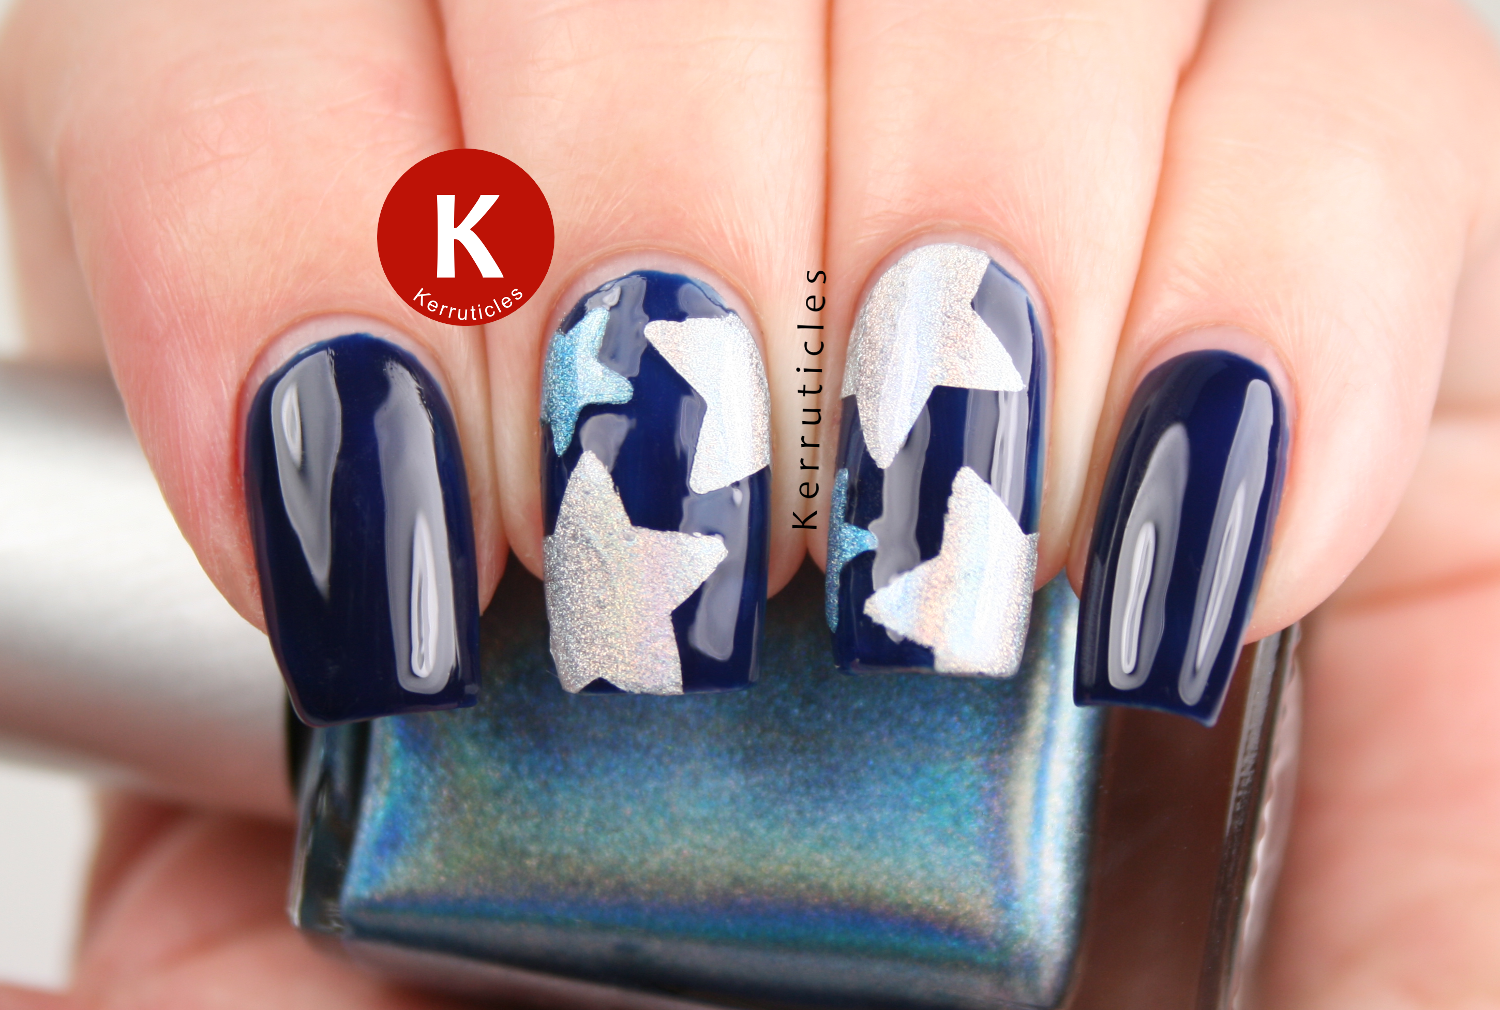 Navy with holographic stars using Ciaté Power Dressing, GOSH Holographic Hero and Color Club Over The Moon